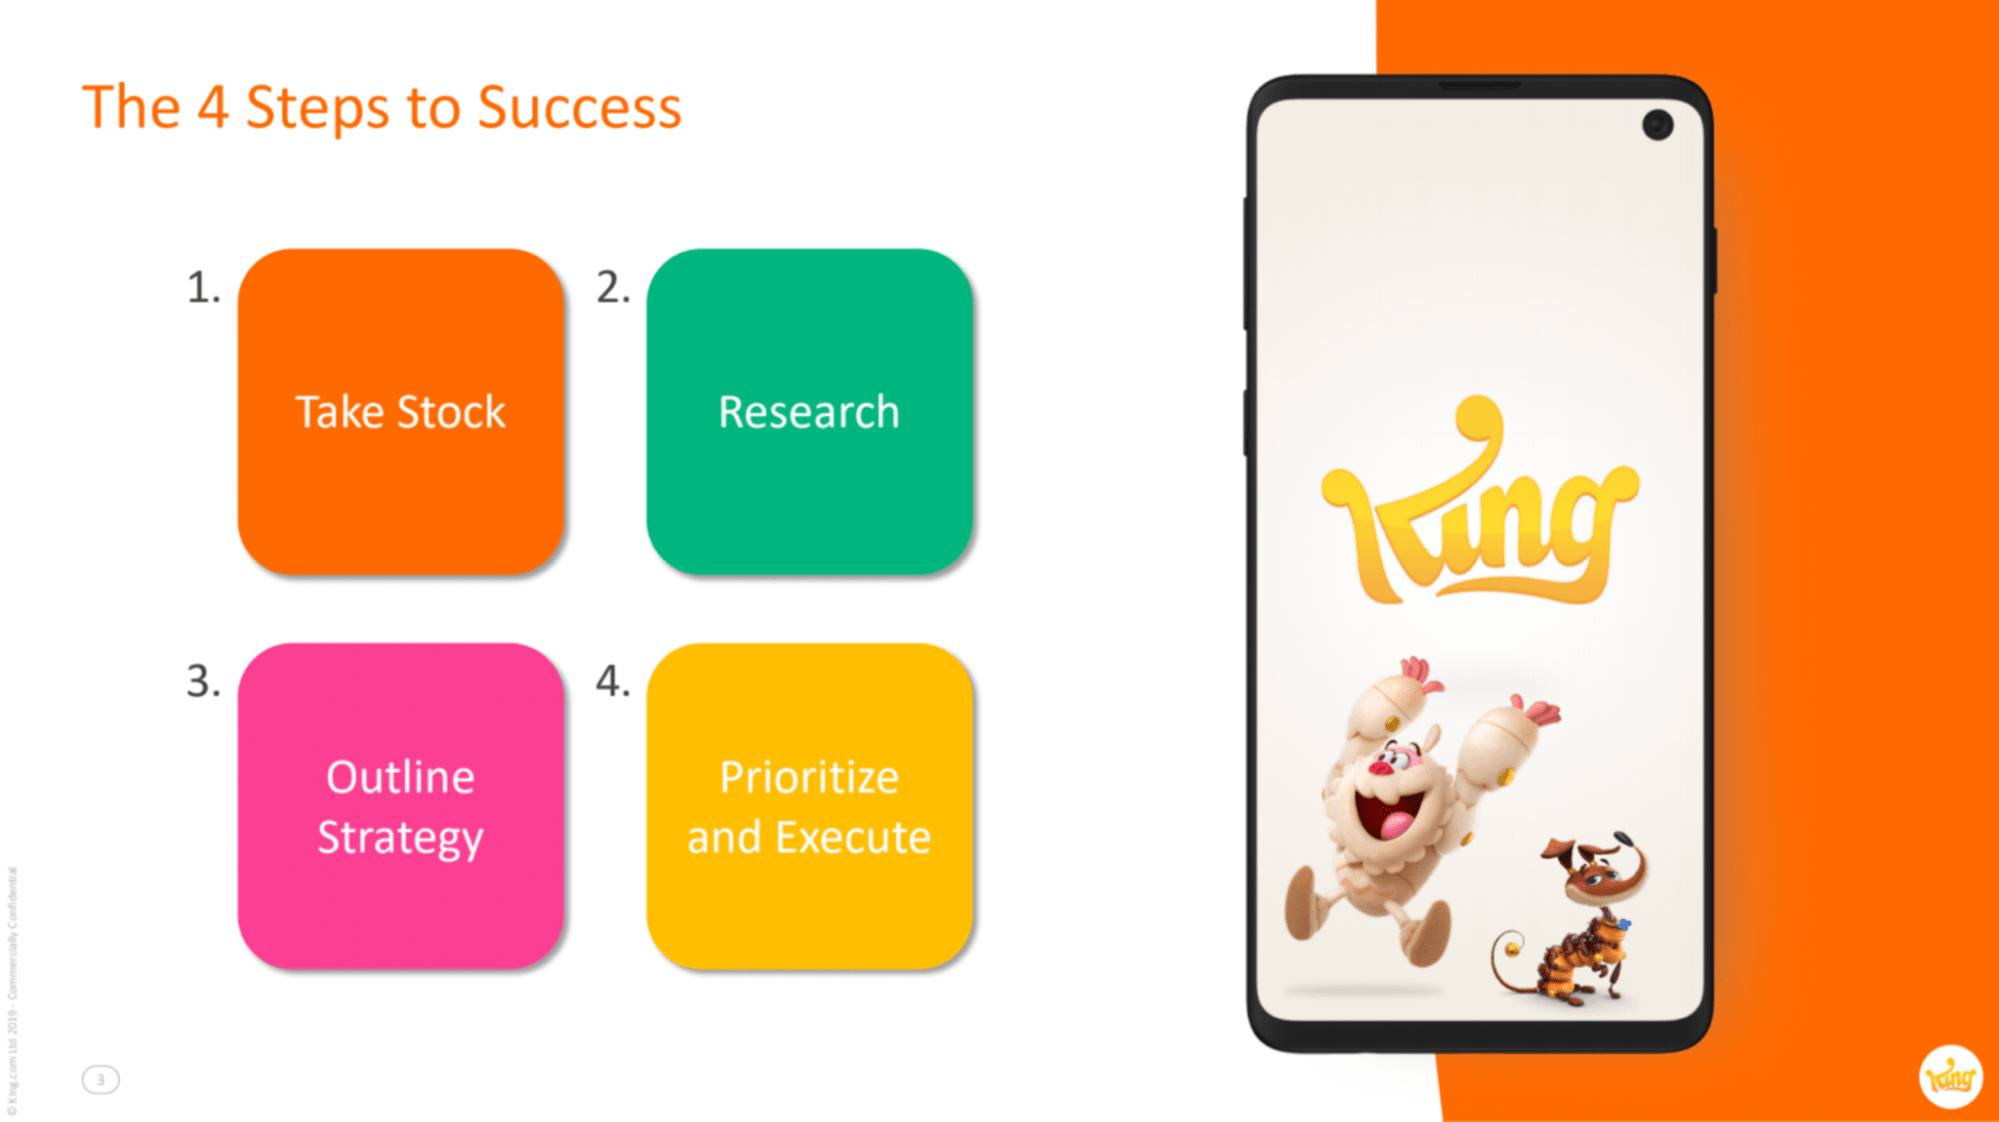 The 4 steps to success